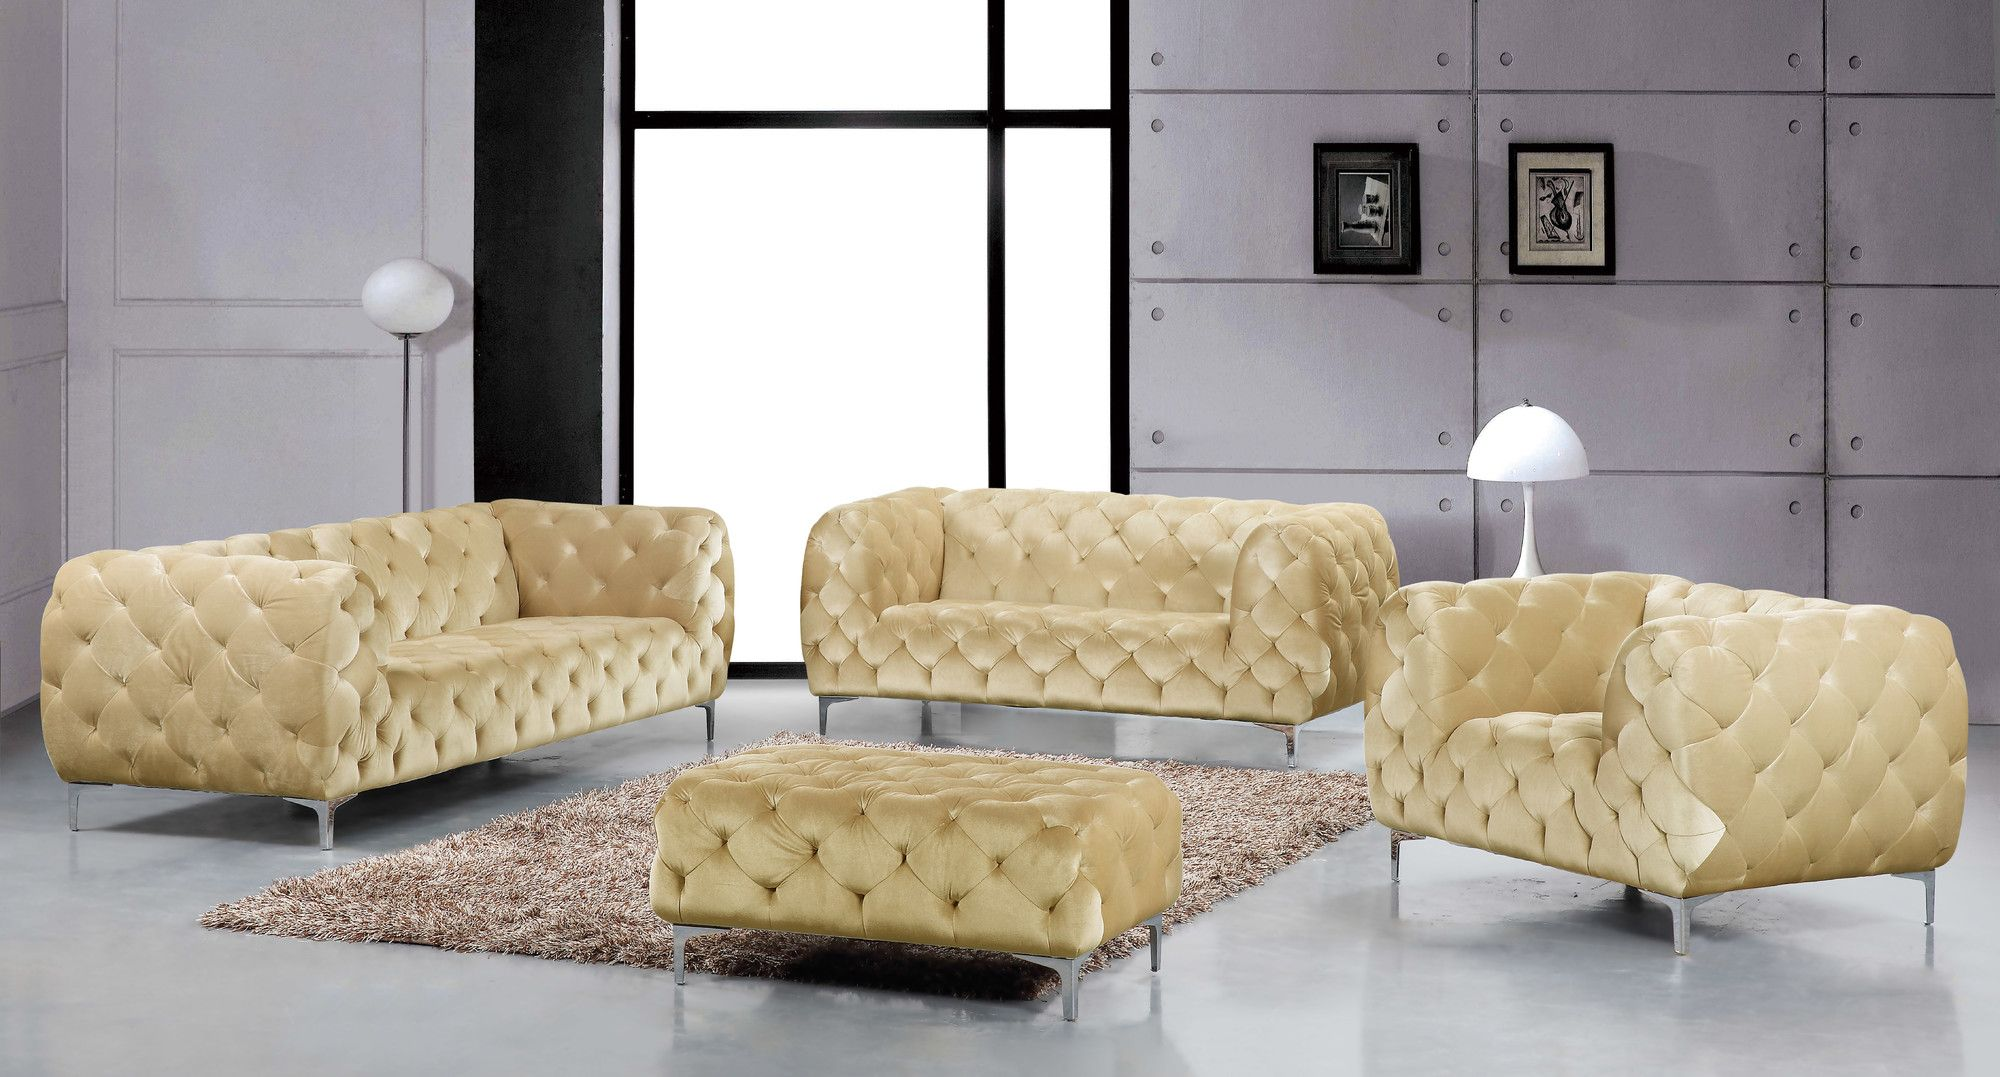 Meridian Furniture USA Mercer Sofa Reviews